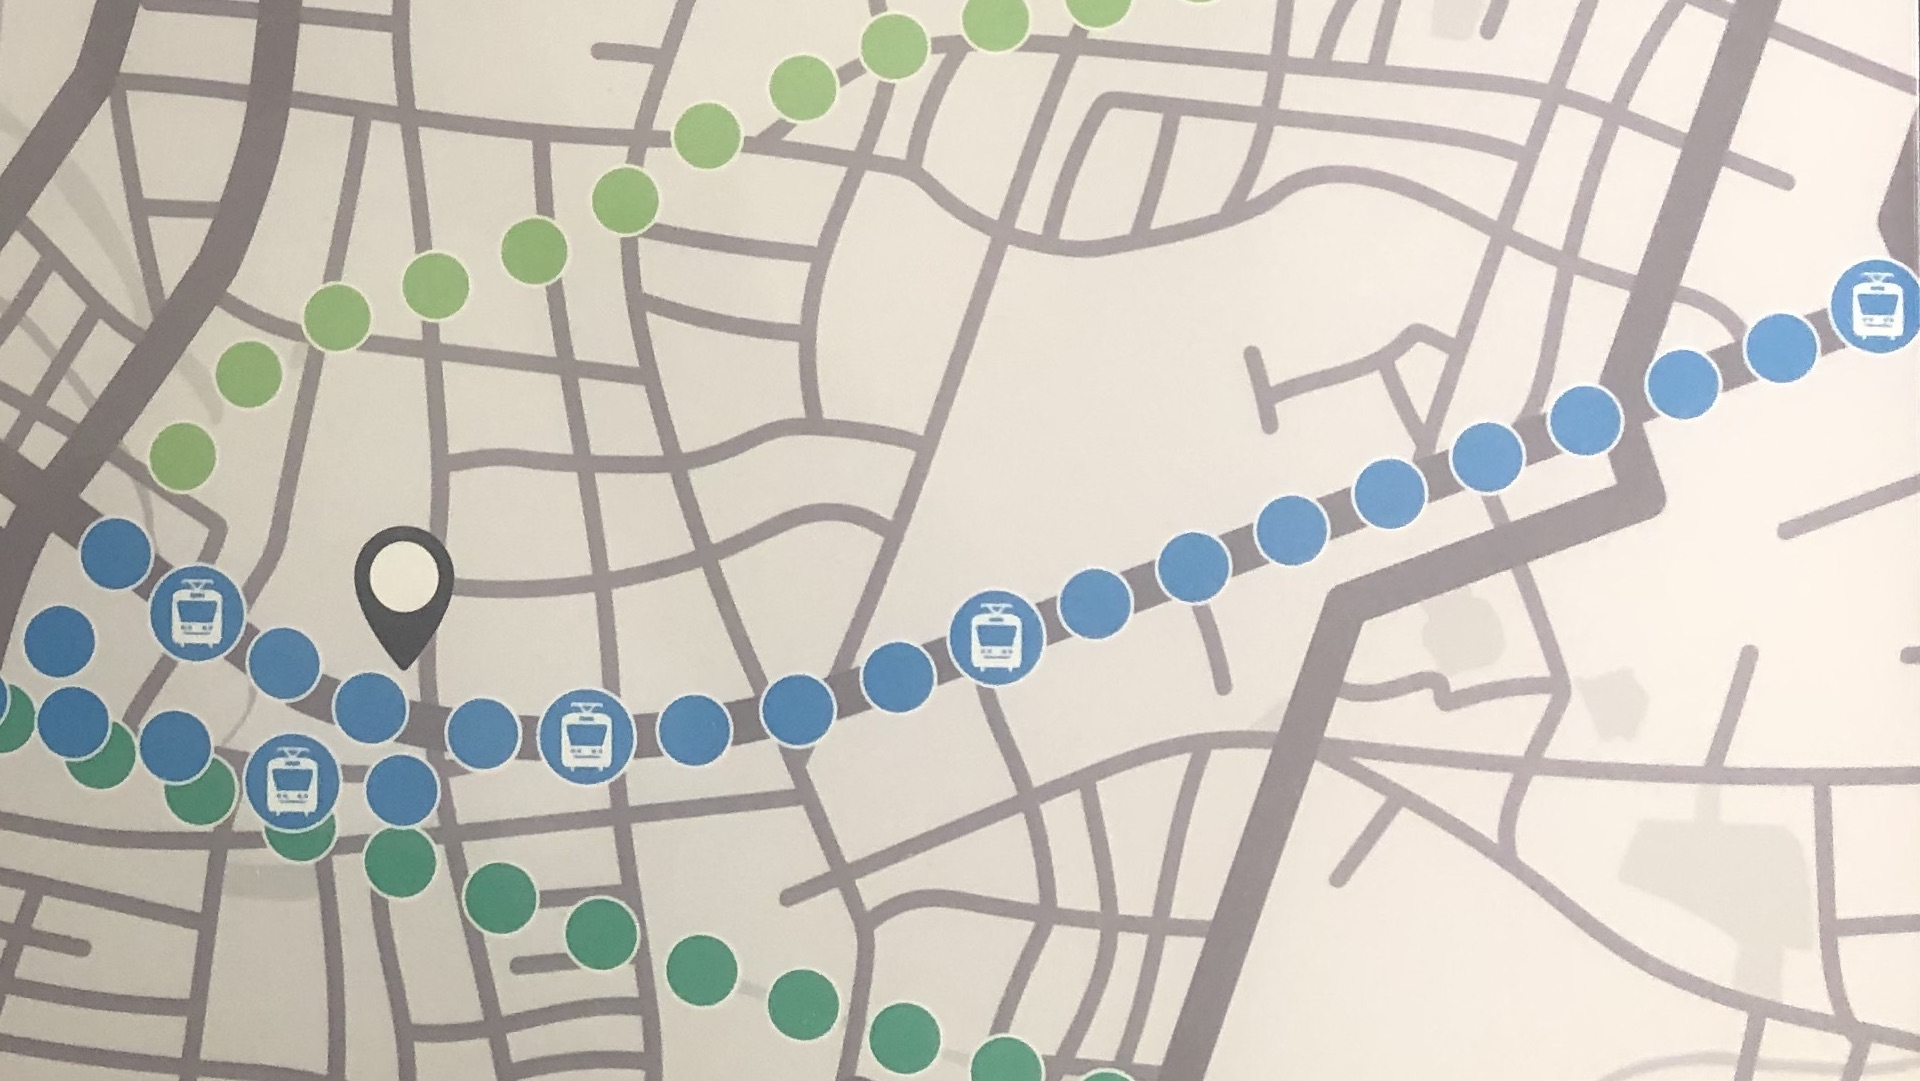 A map with blue, dark green, and light green dots indicating the LRT route, the Spurline Trail, and the Iron Horse Trail in Waterloo Region.